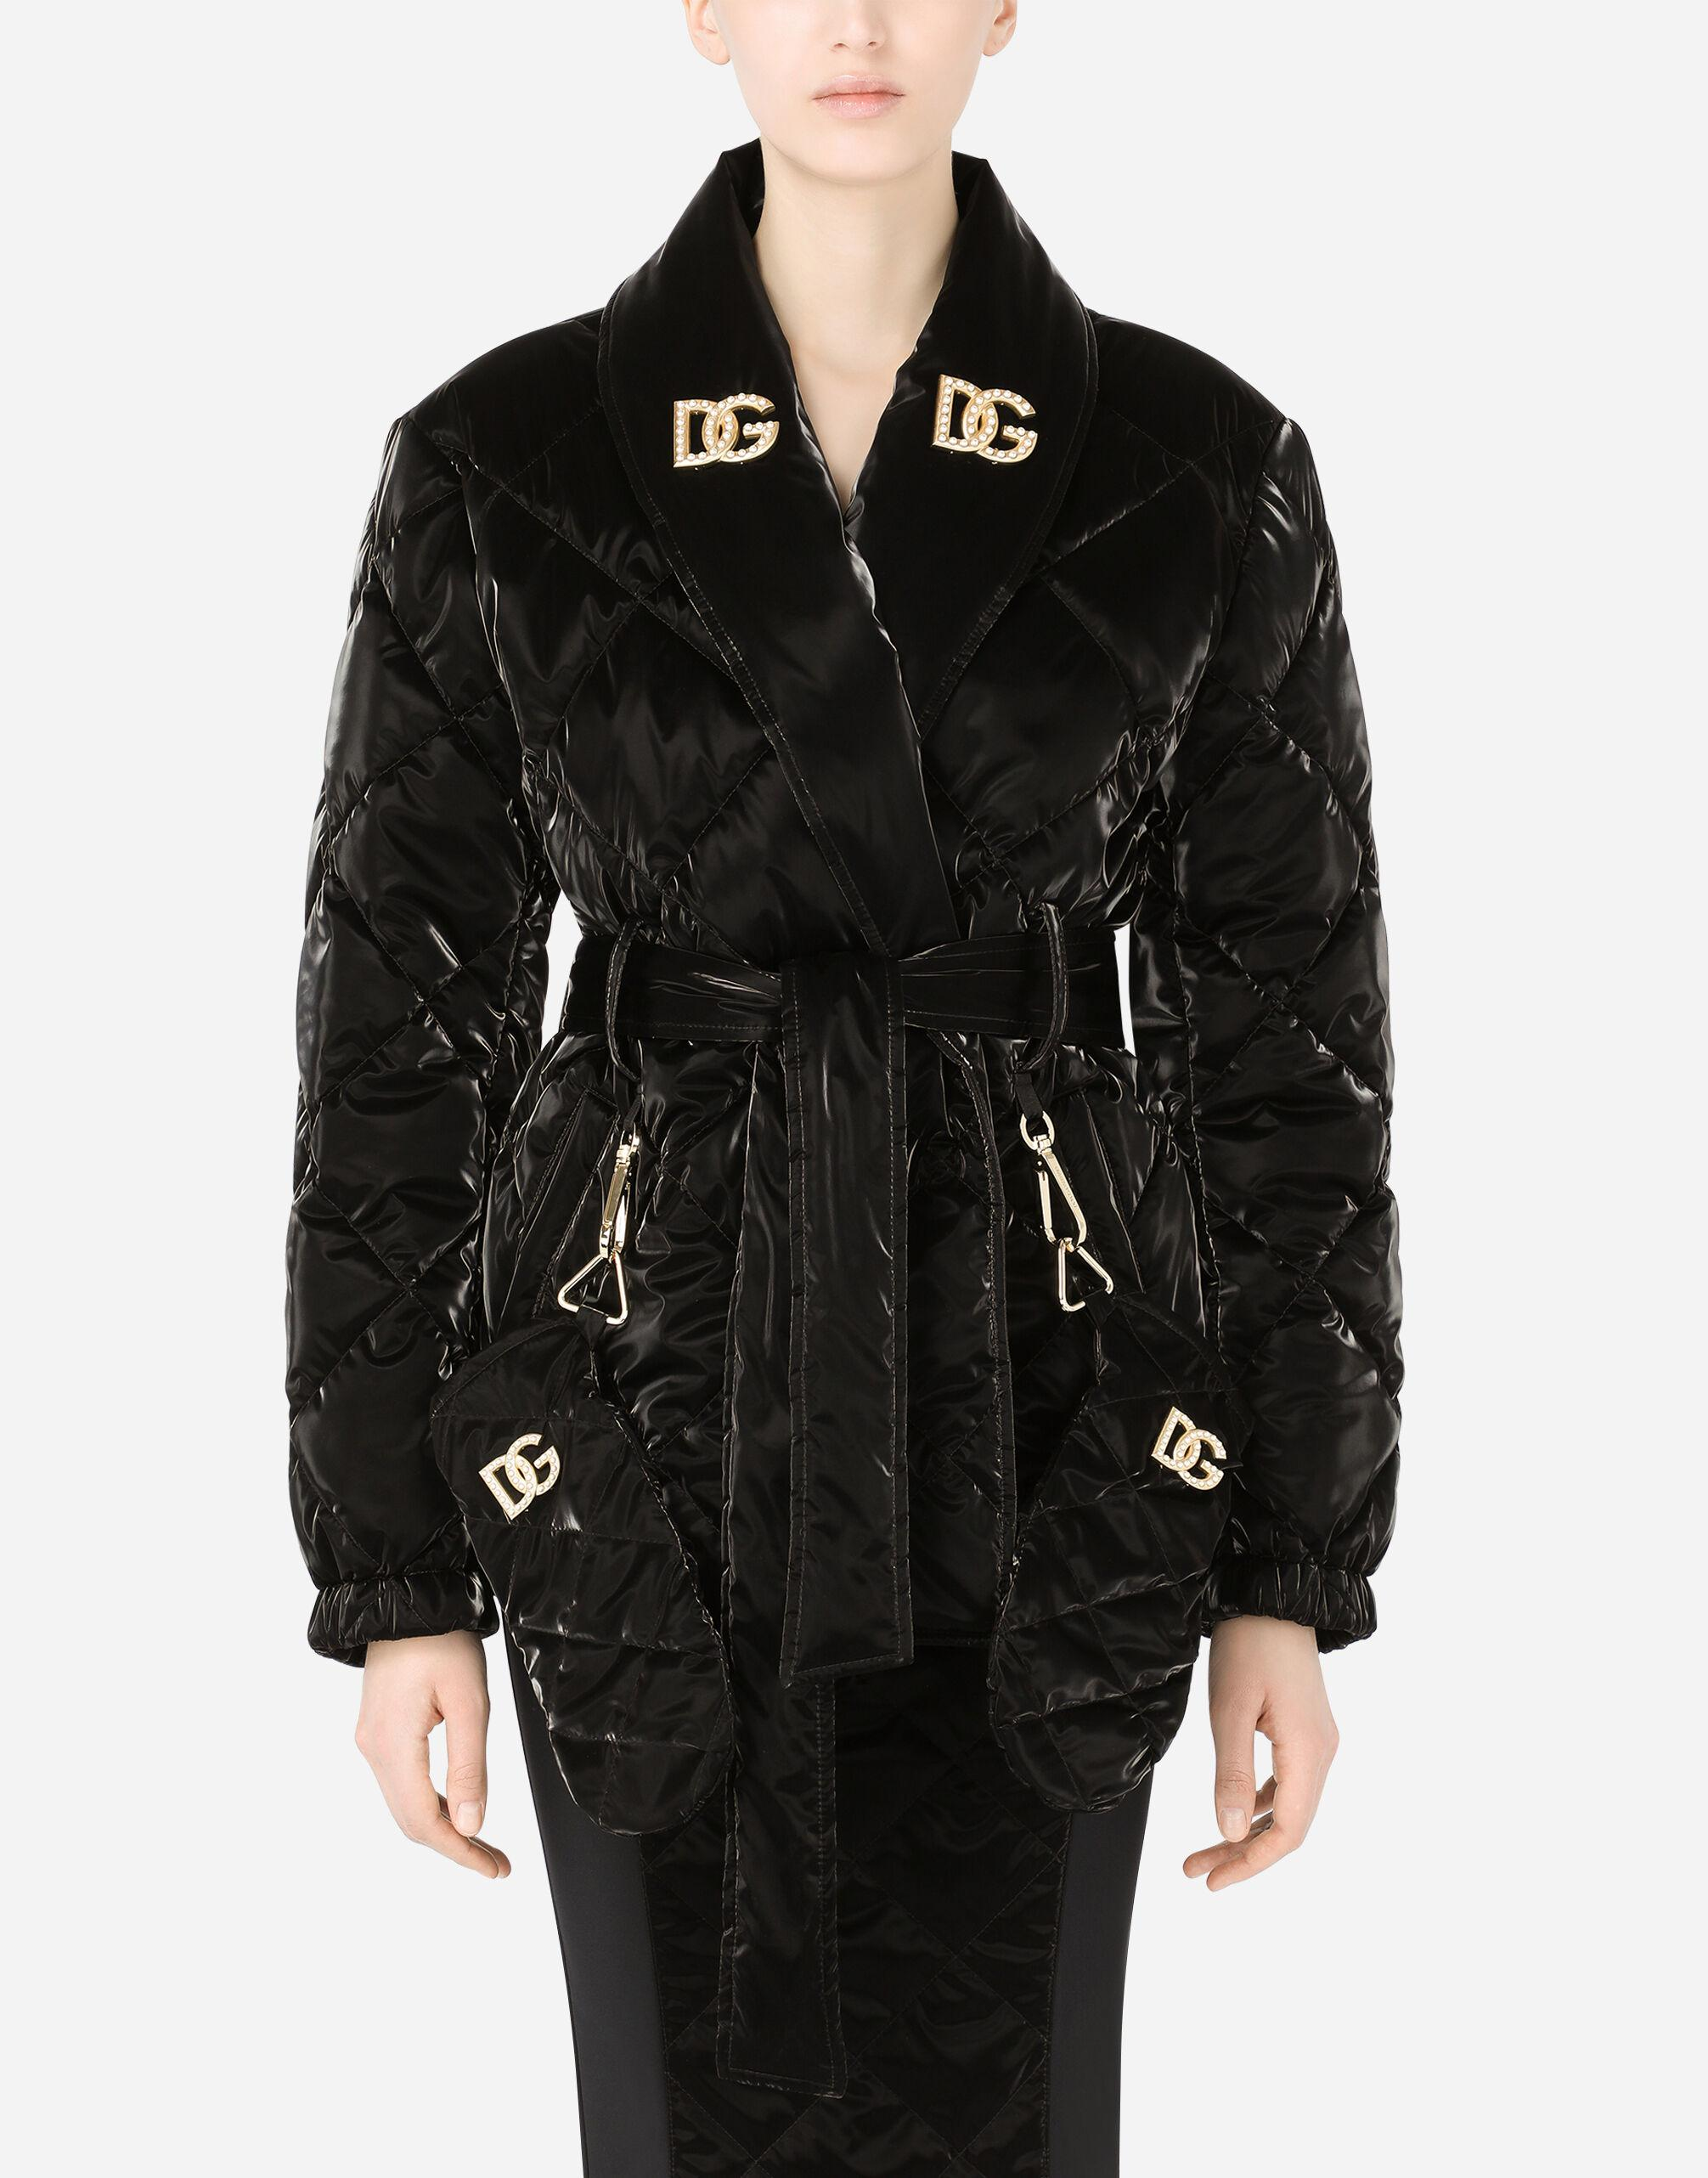 Coated quilted fabric jacket with gloves and DG crystal embellishment